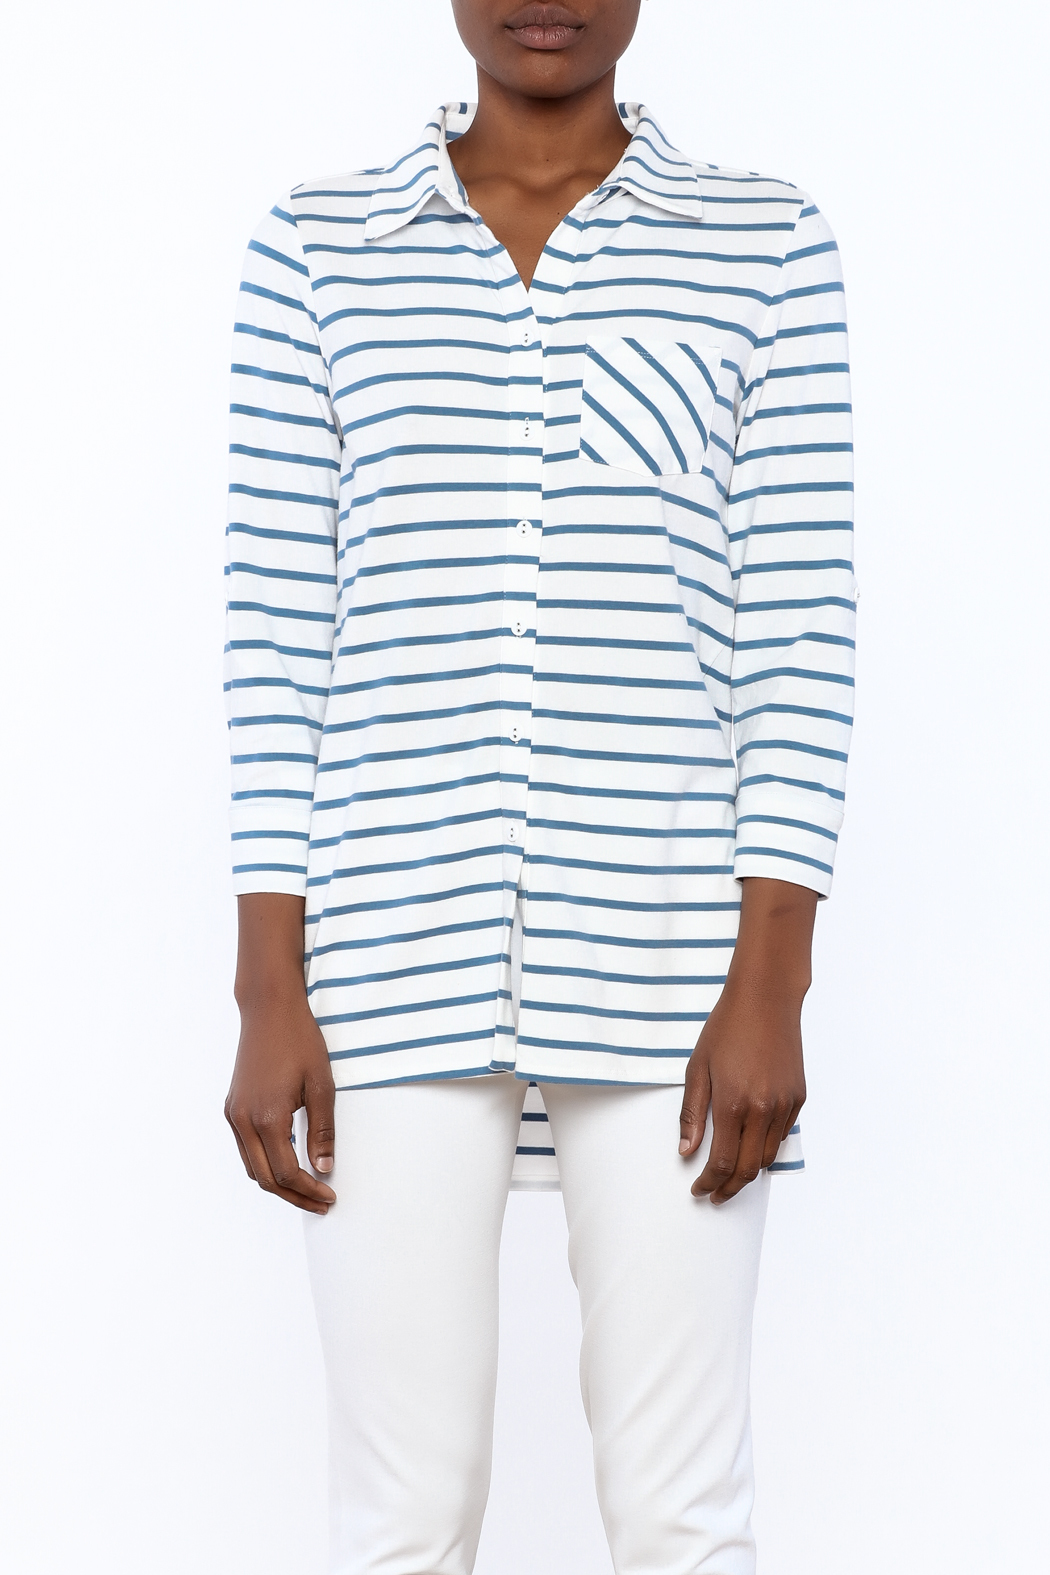 Tyler Boe Striped Button-Down Polo - Side Cropped Image